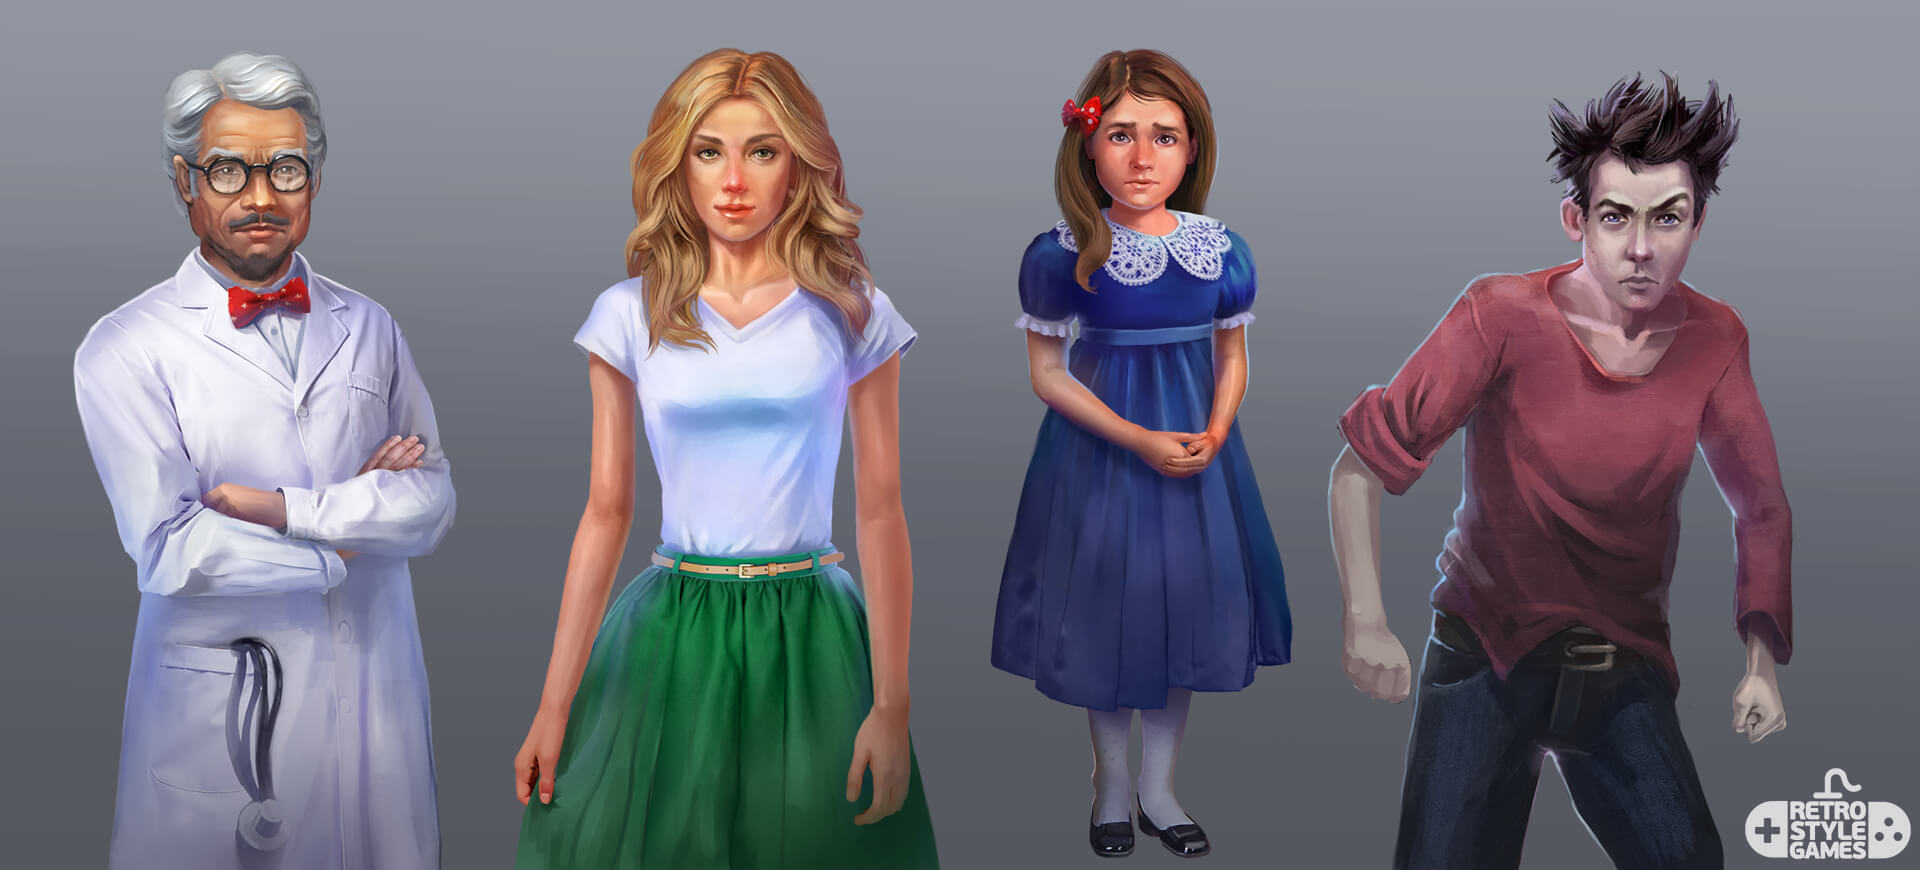 Asylum Game Characters concepts